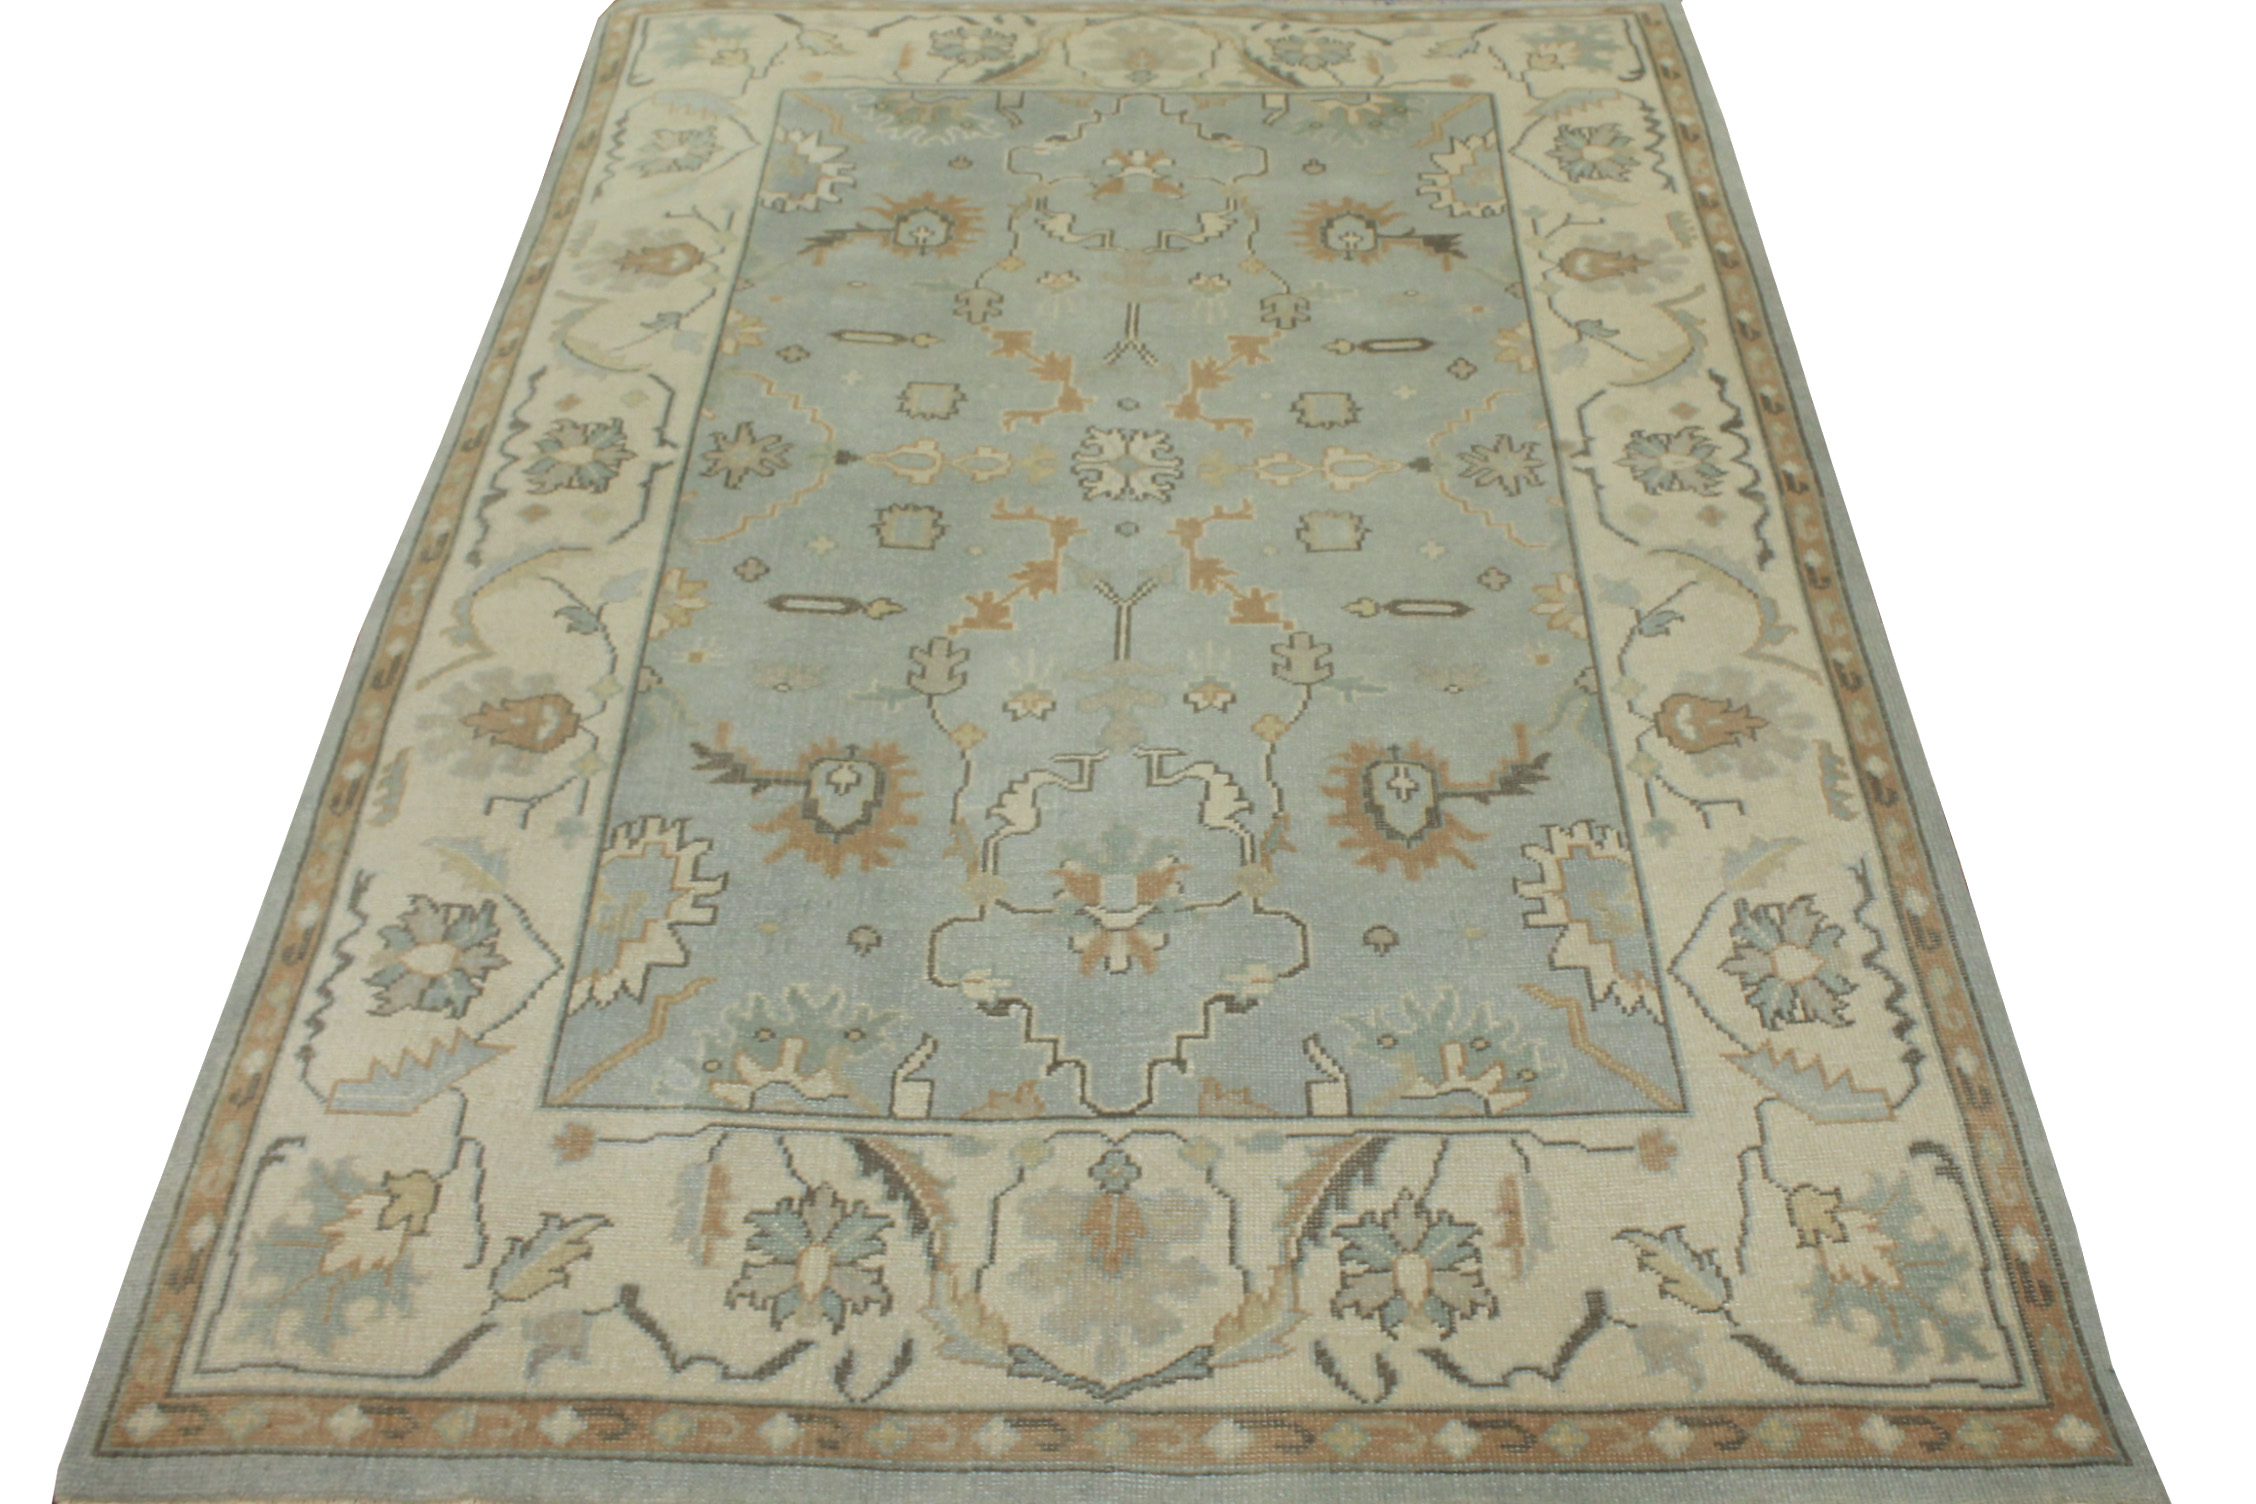 6x9 Oushak Hand Knotted Wool Area Rug - MR15278